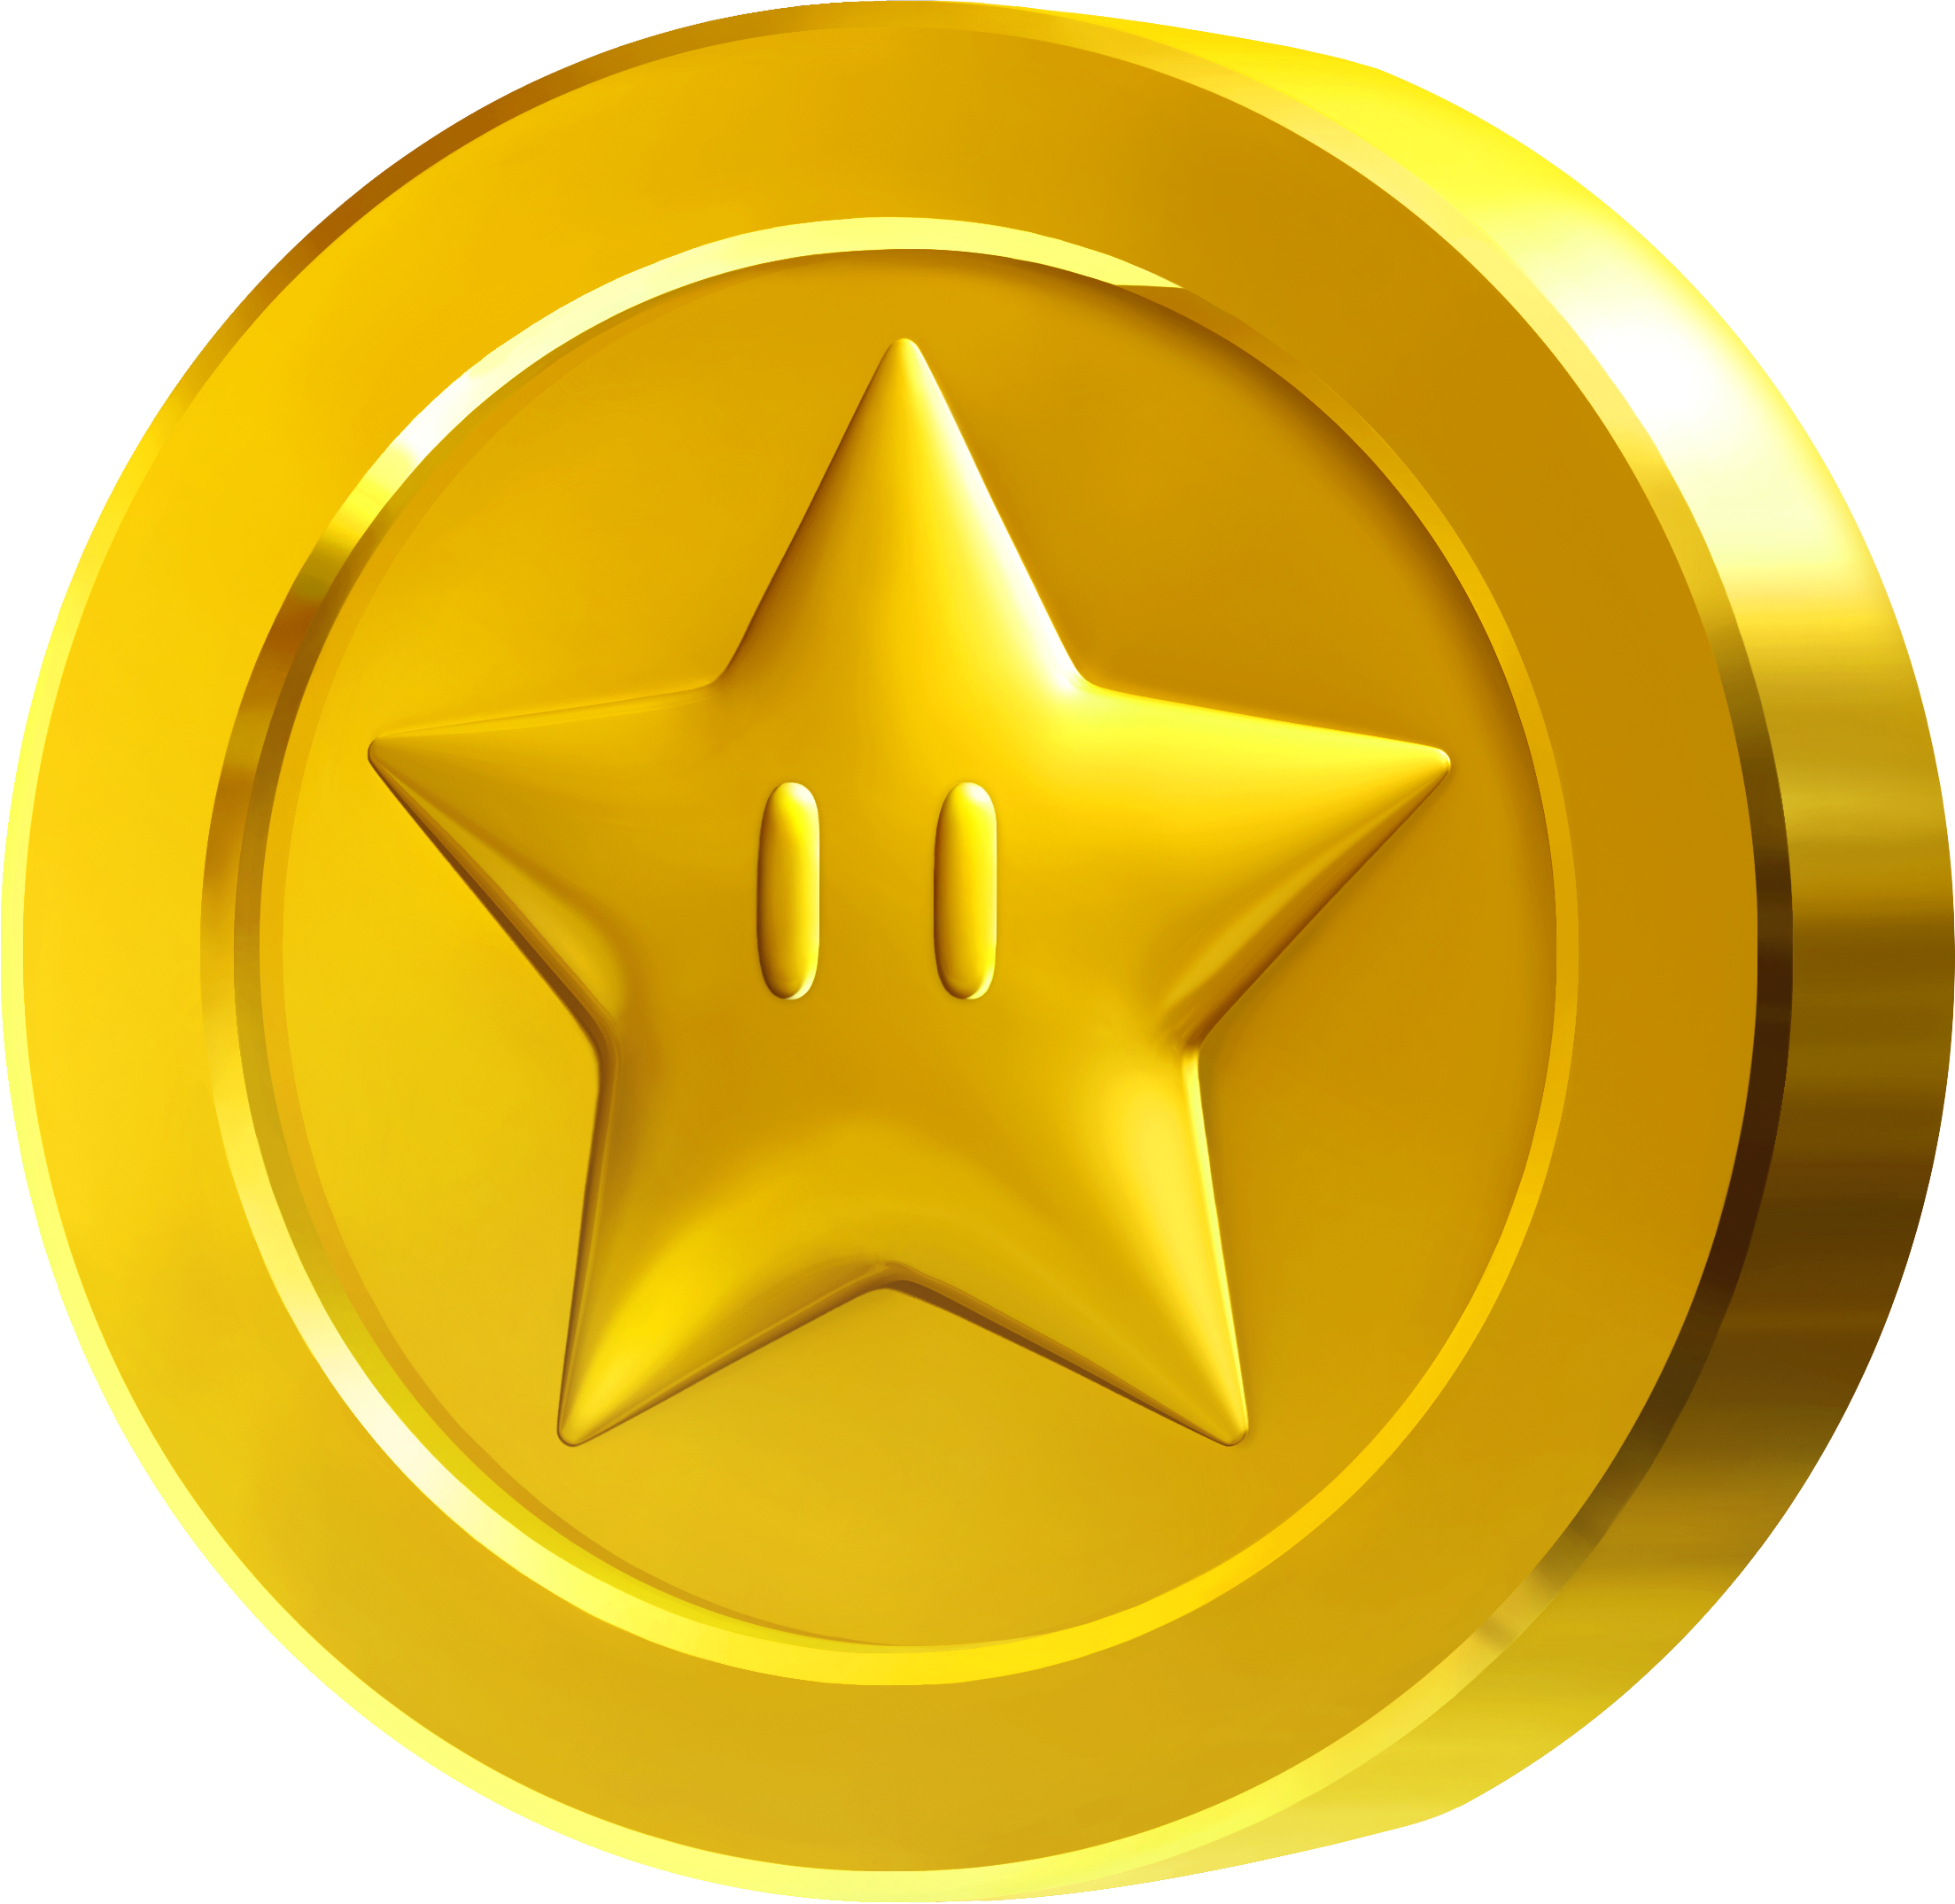 Gold clipart coin. Google game ui icon